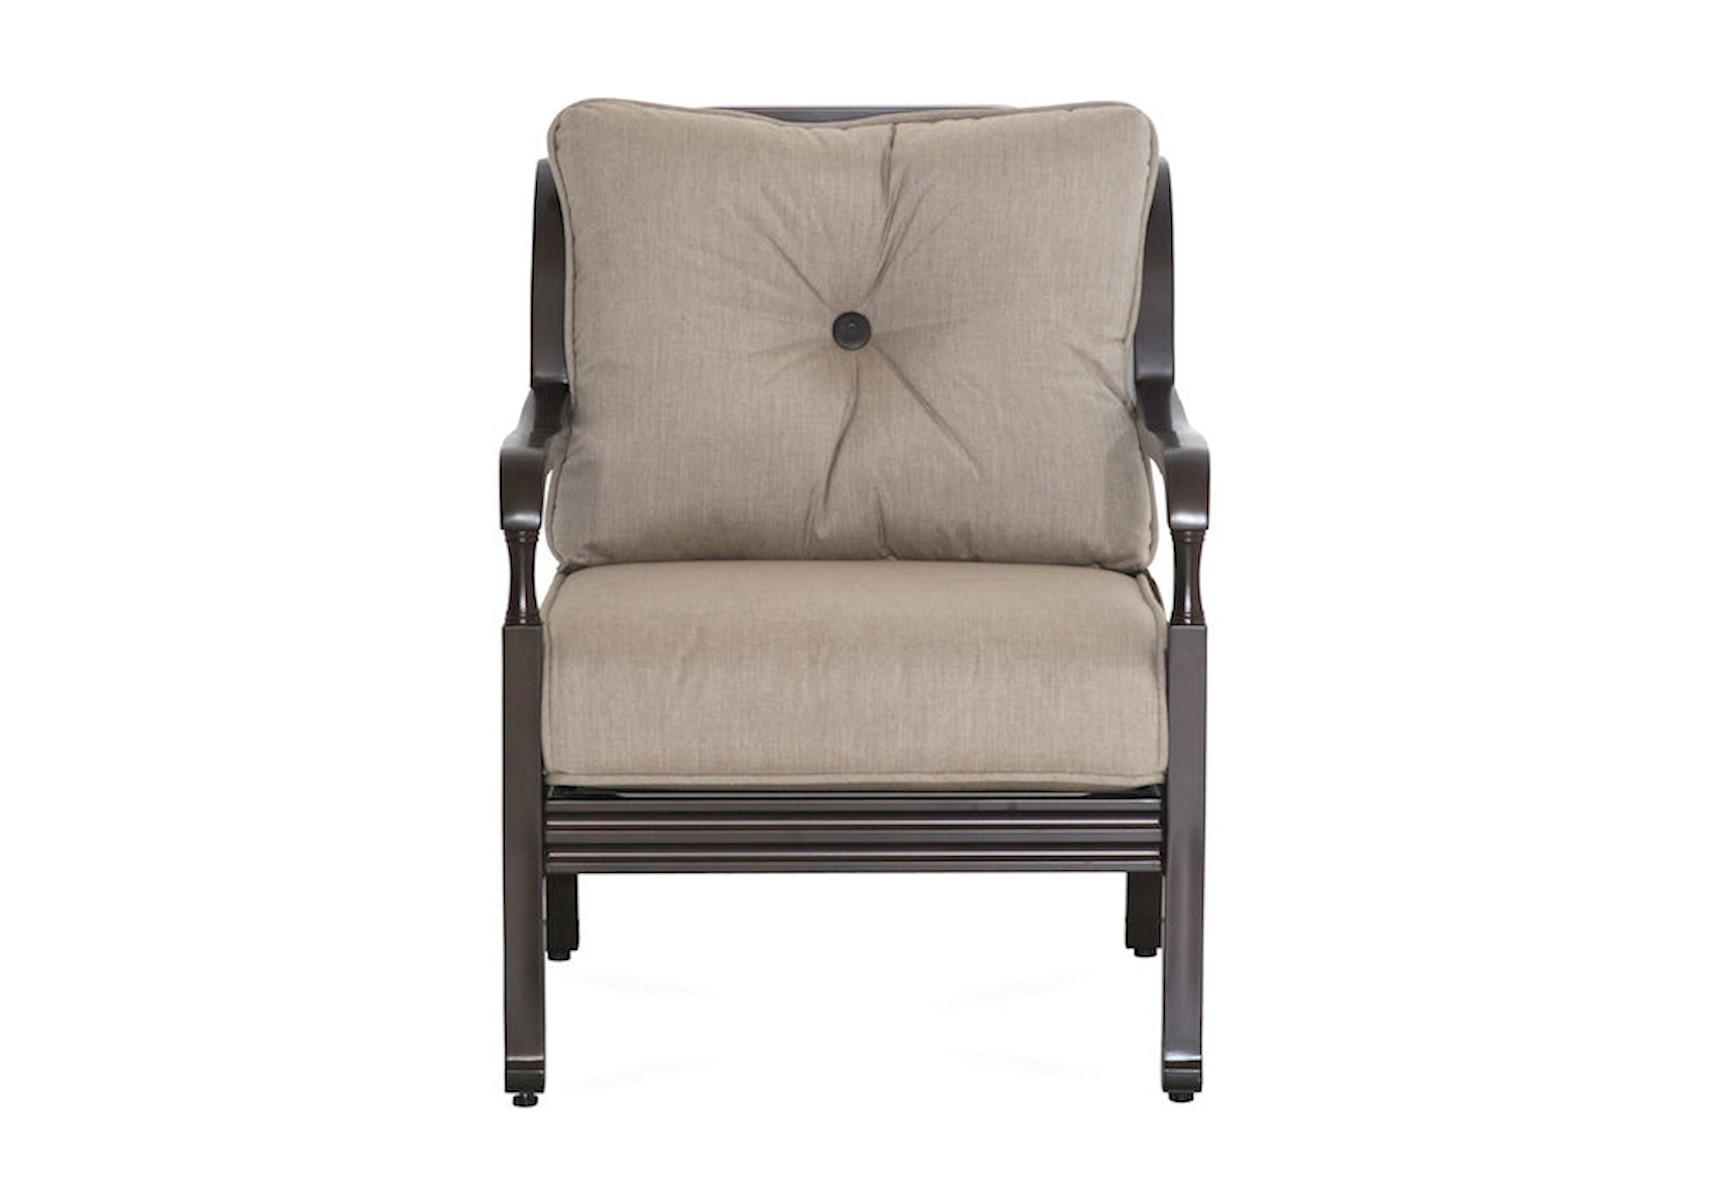 Image of: Lacks River House Outdoor Lounge Chair By Paula Deen